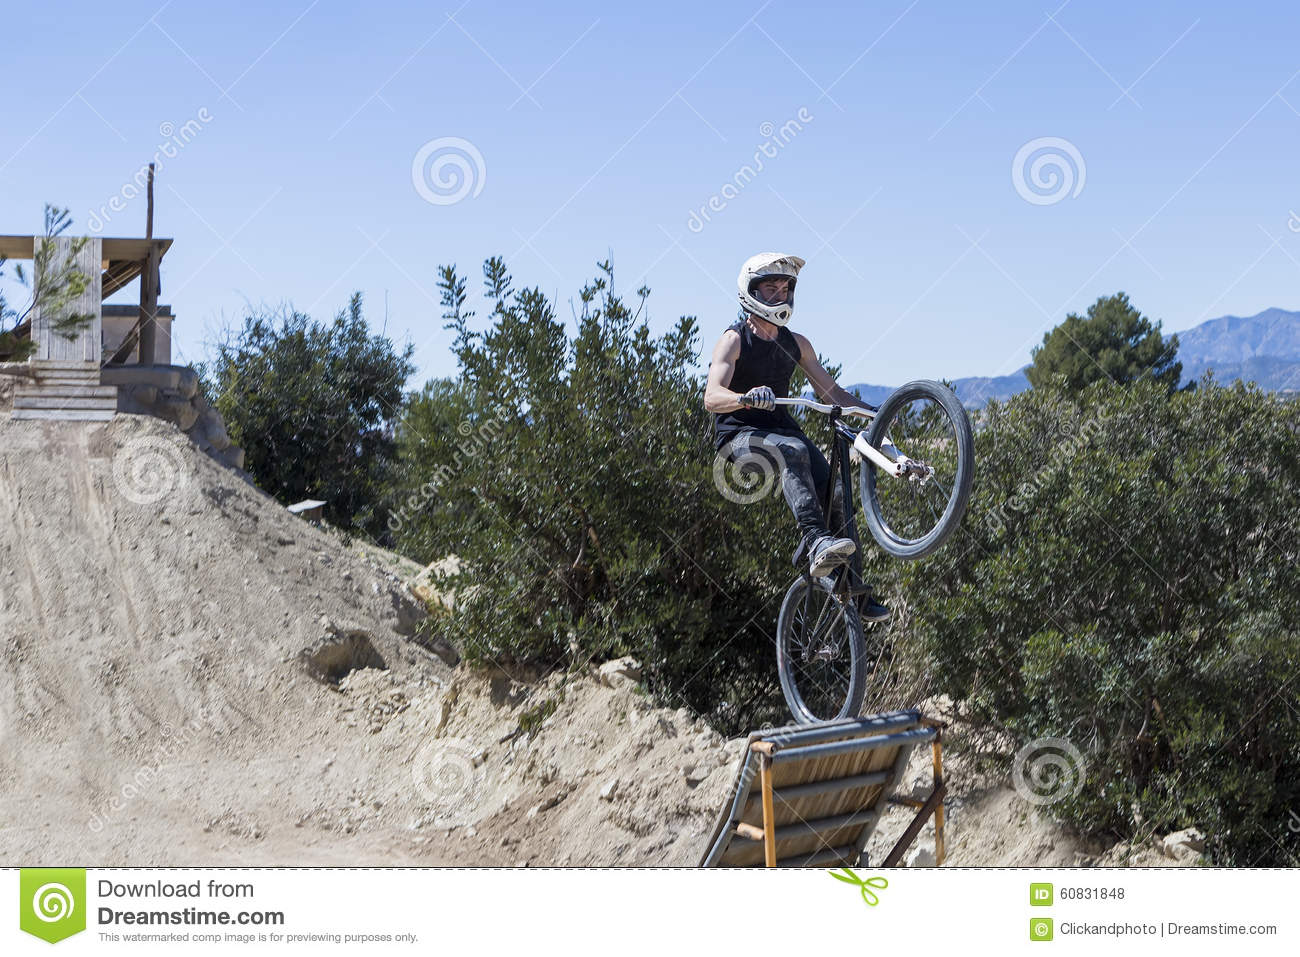 BMX cyclist jumping stock photo. Image of ride, rider ...